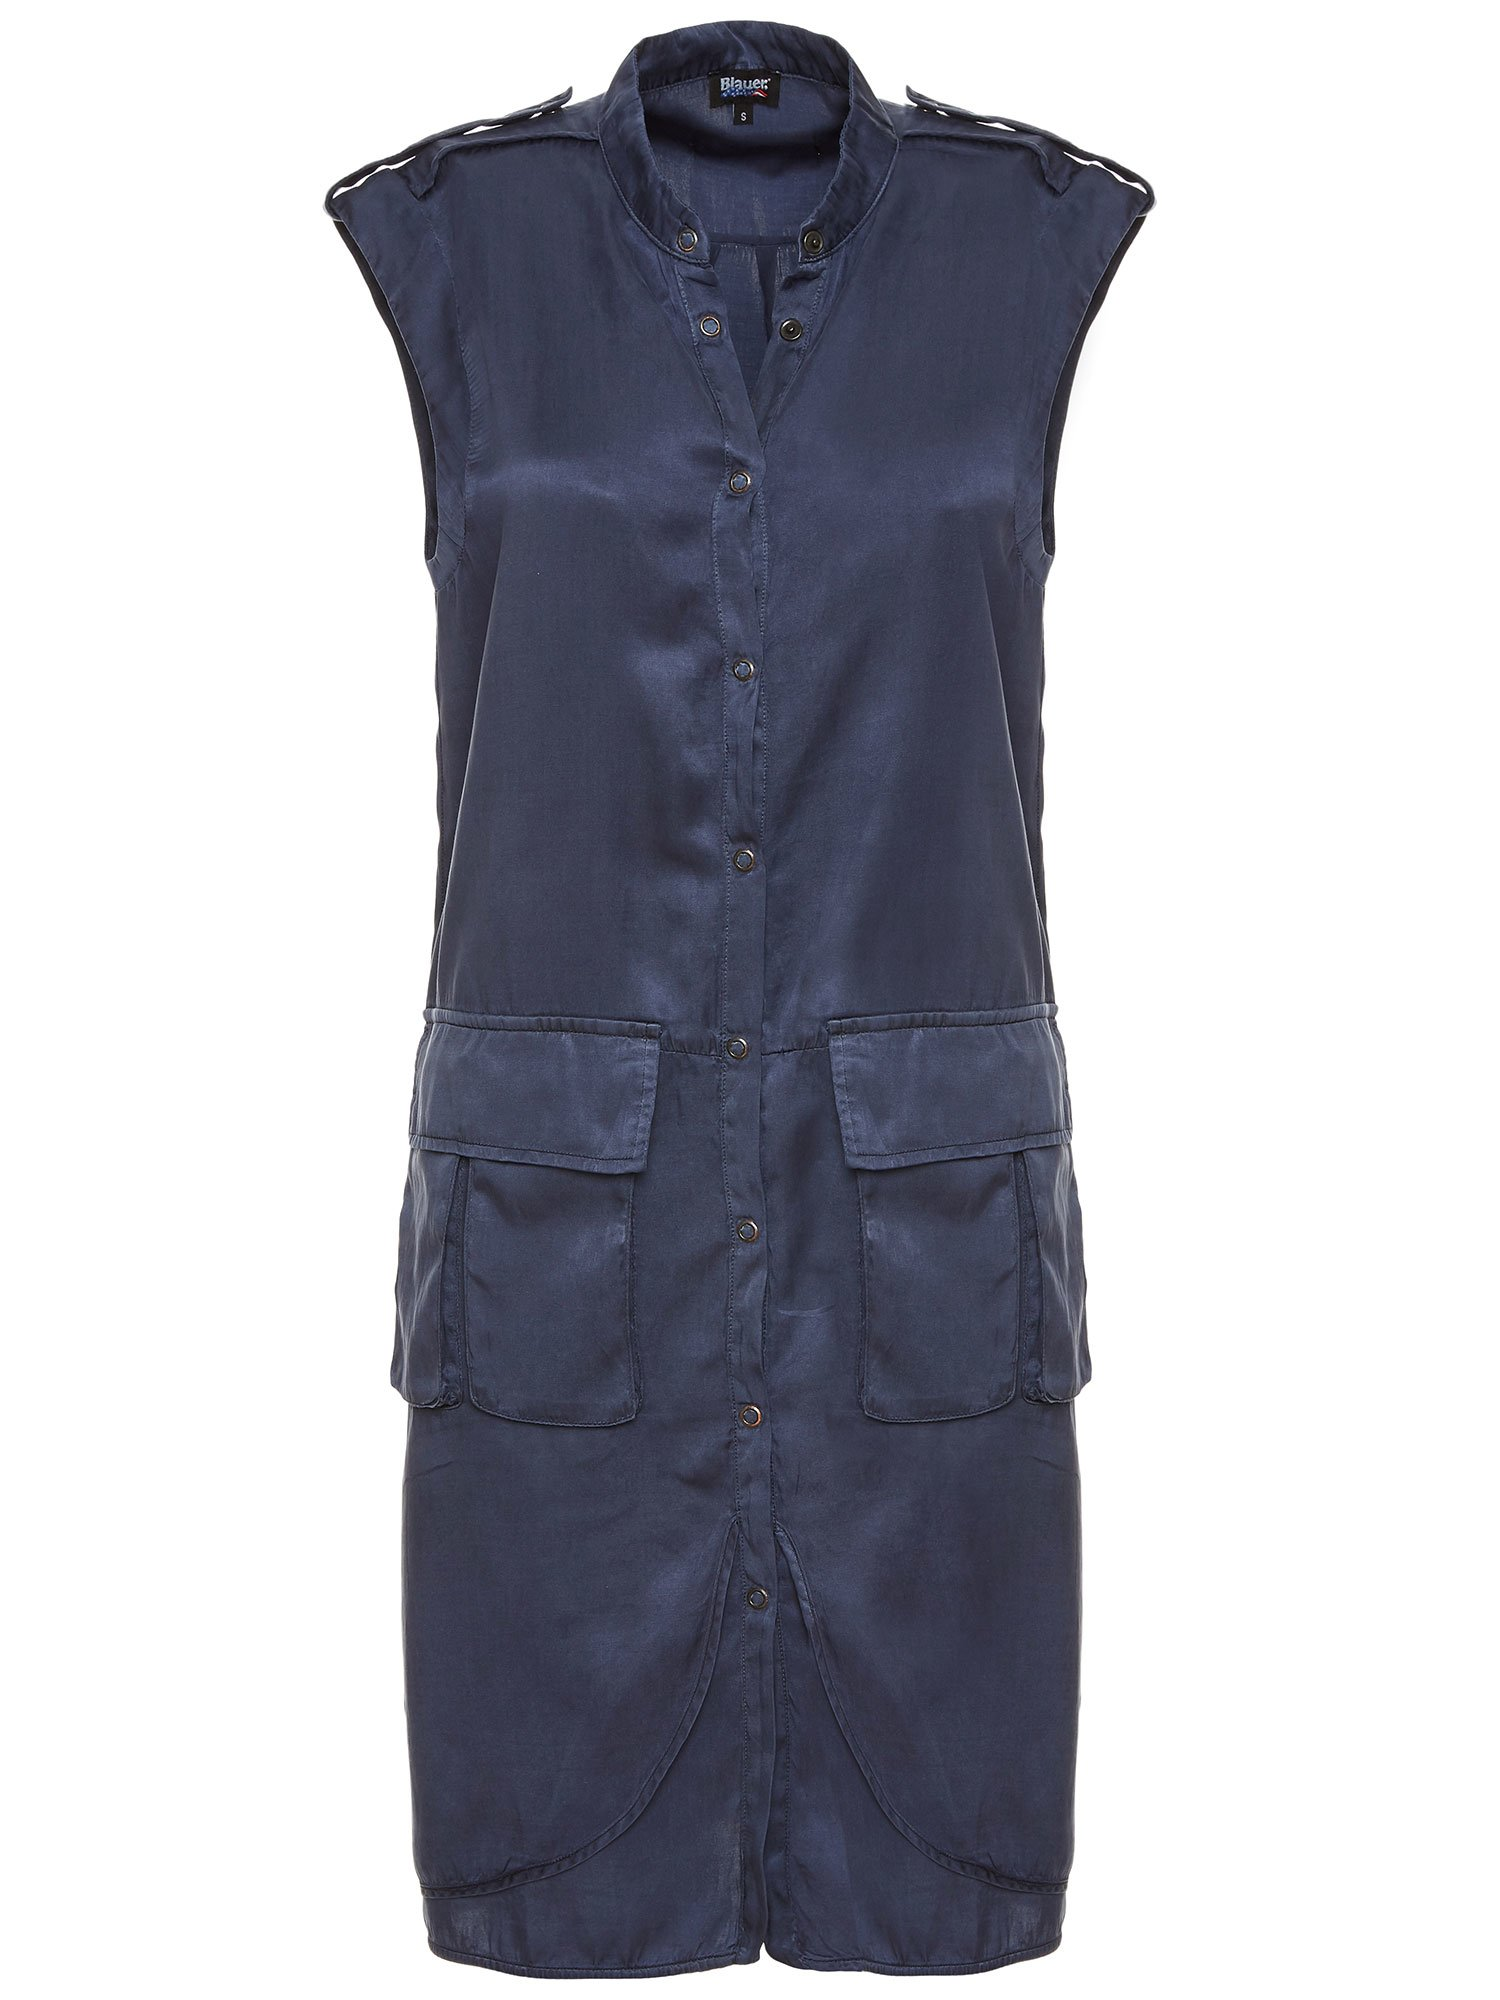 SLEEVELESS DRESS WITH LARGE POCKETS - Blauer